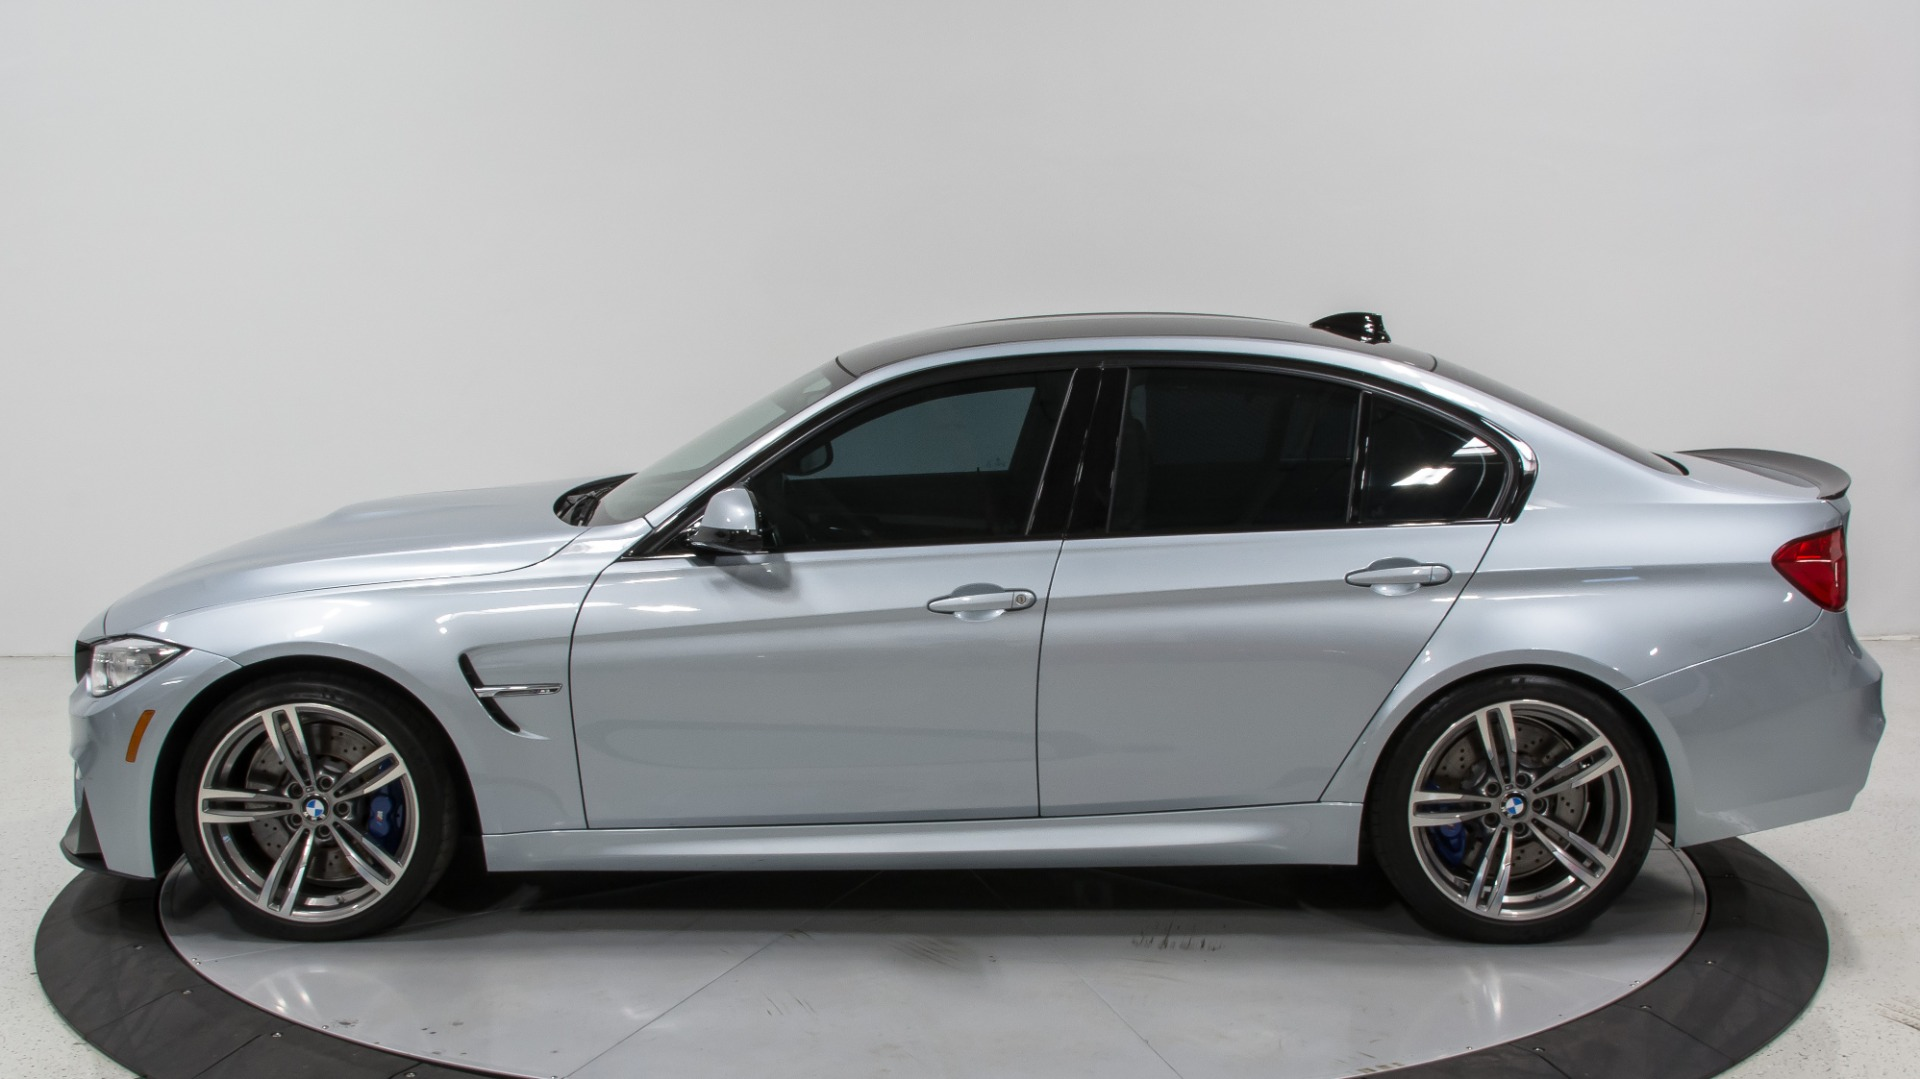 2015 bmw m3 stock 22618 for sale near pompano beach fl fl bmw dealer. Black Bedroom Furniture Sets. Home Design Ideas